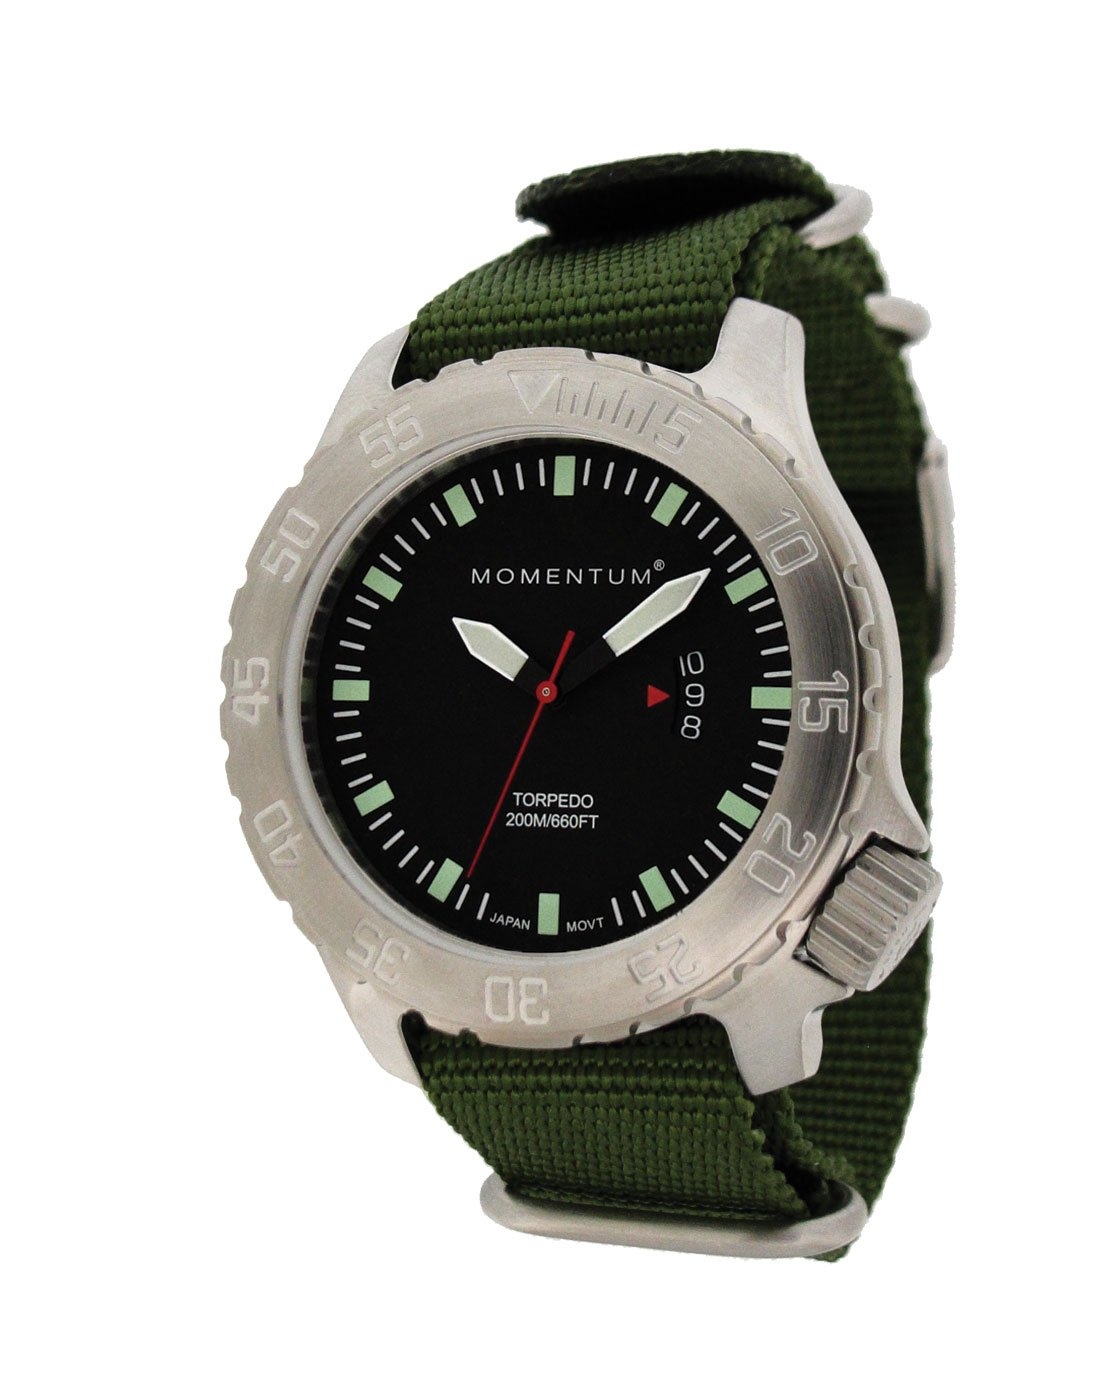 MOMENTUM Watch -  Torpedo With Nylon Green Band